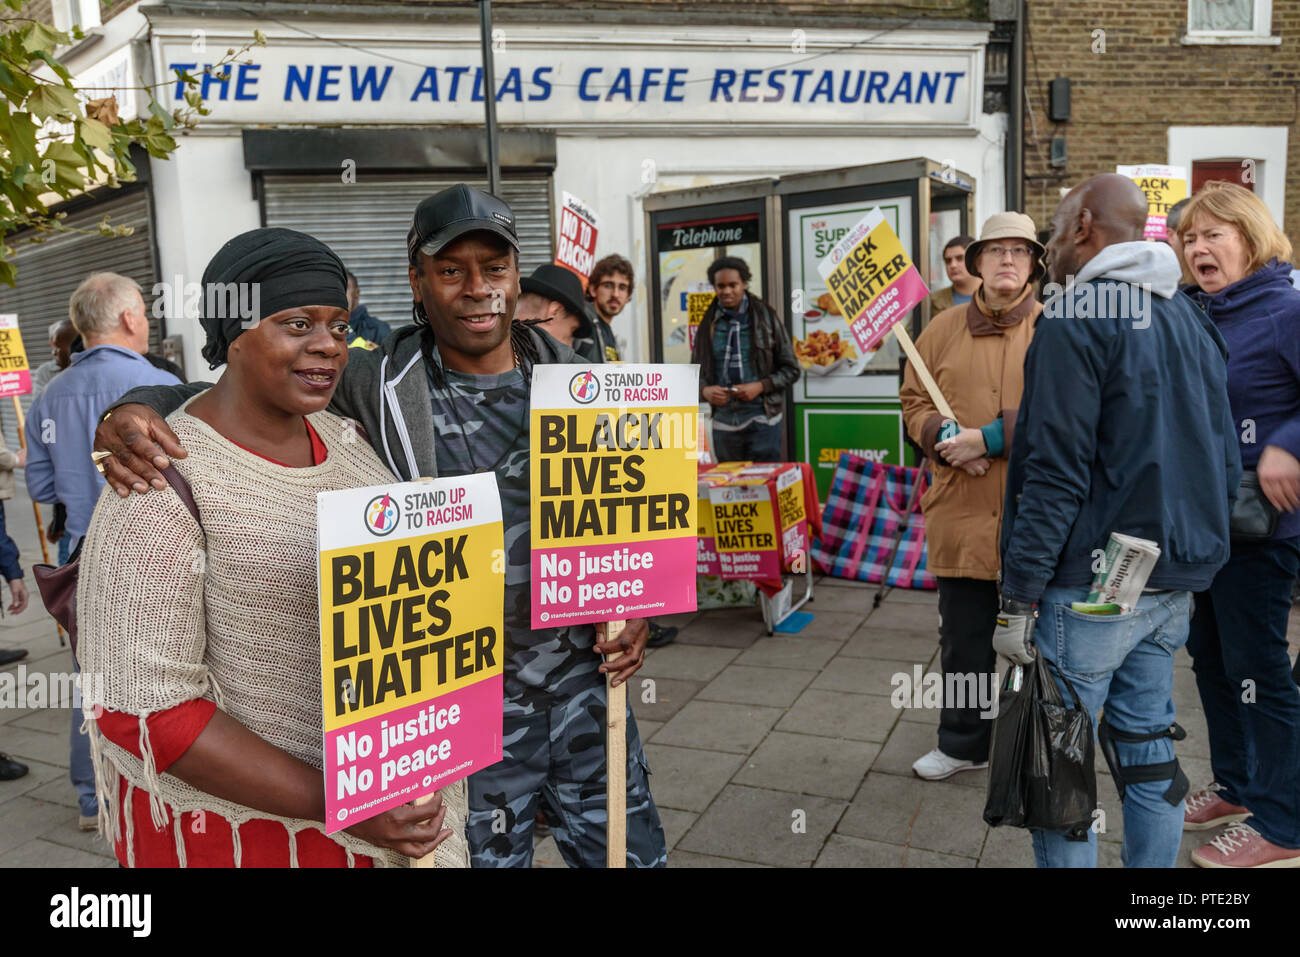 London, UK. October 9th 2018. People gather for a rally outside the New Atlas Cafe Restaurant where a young black man was attacked by police who used obviously unnecessary force when arresting him on suspicion of having been involved in a knife attack. He was assaulted by six officers, and was viciously kicked while officers struggled to handcuff him, andwhen he was well under control and held on the ground he was sprayed in the face with CS gas. Credit: Peter Marshall/Alamy Live News - Stock Image